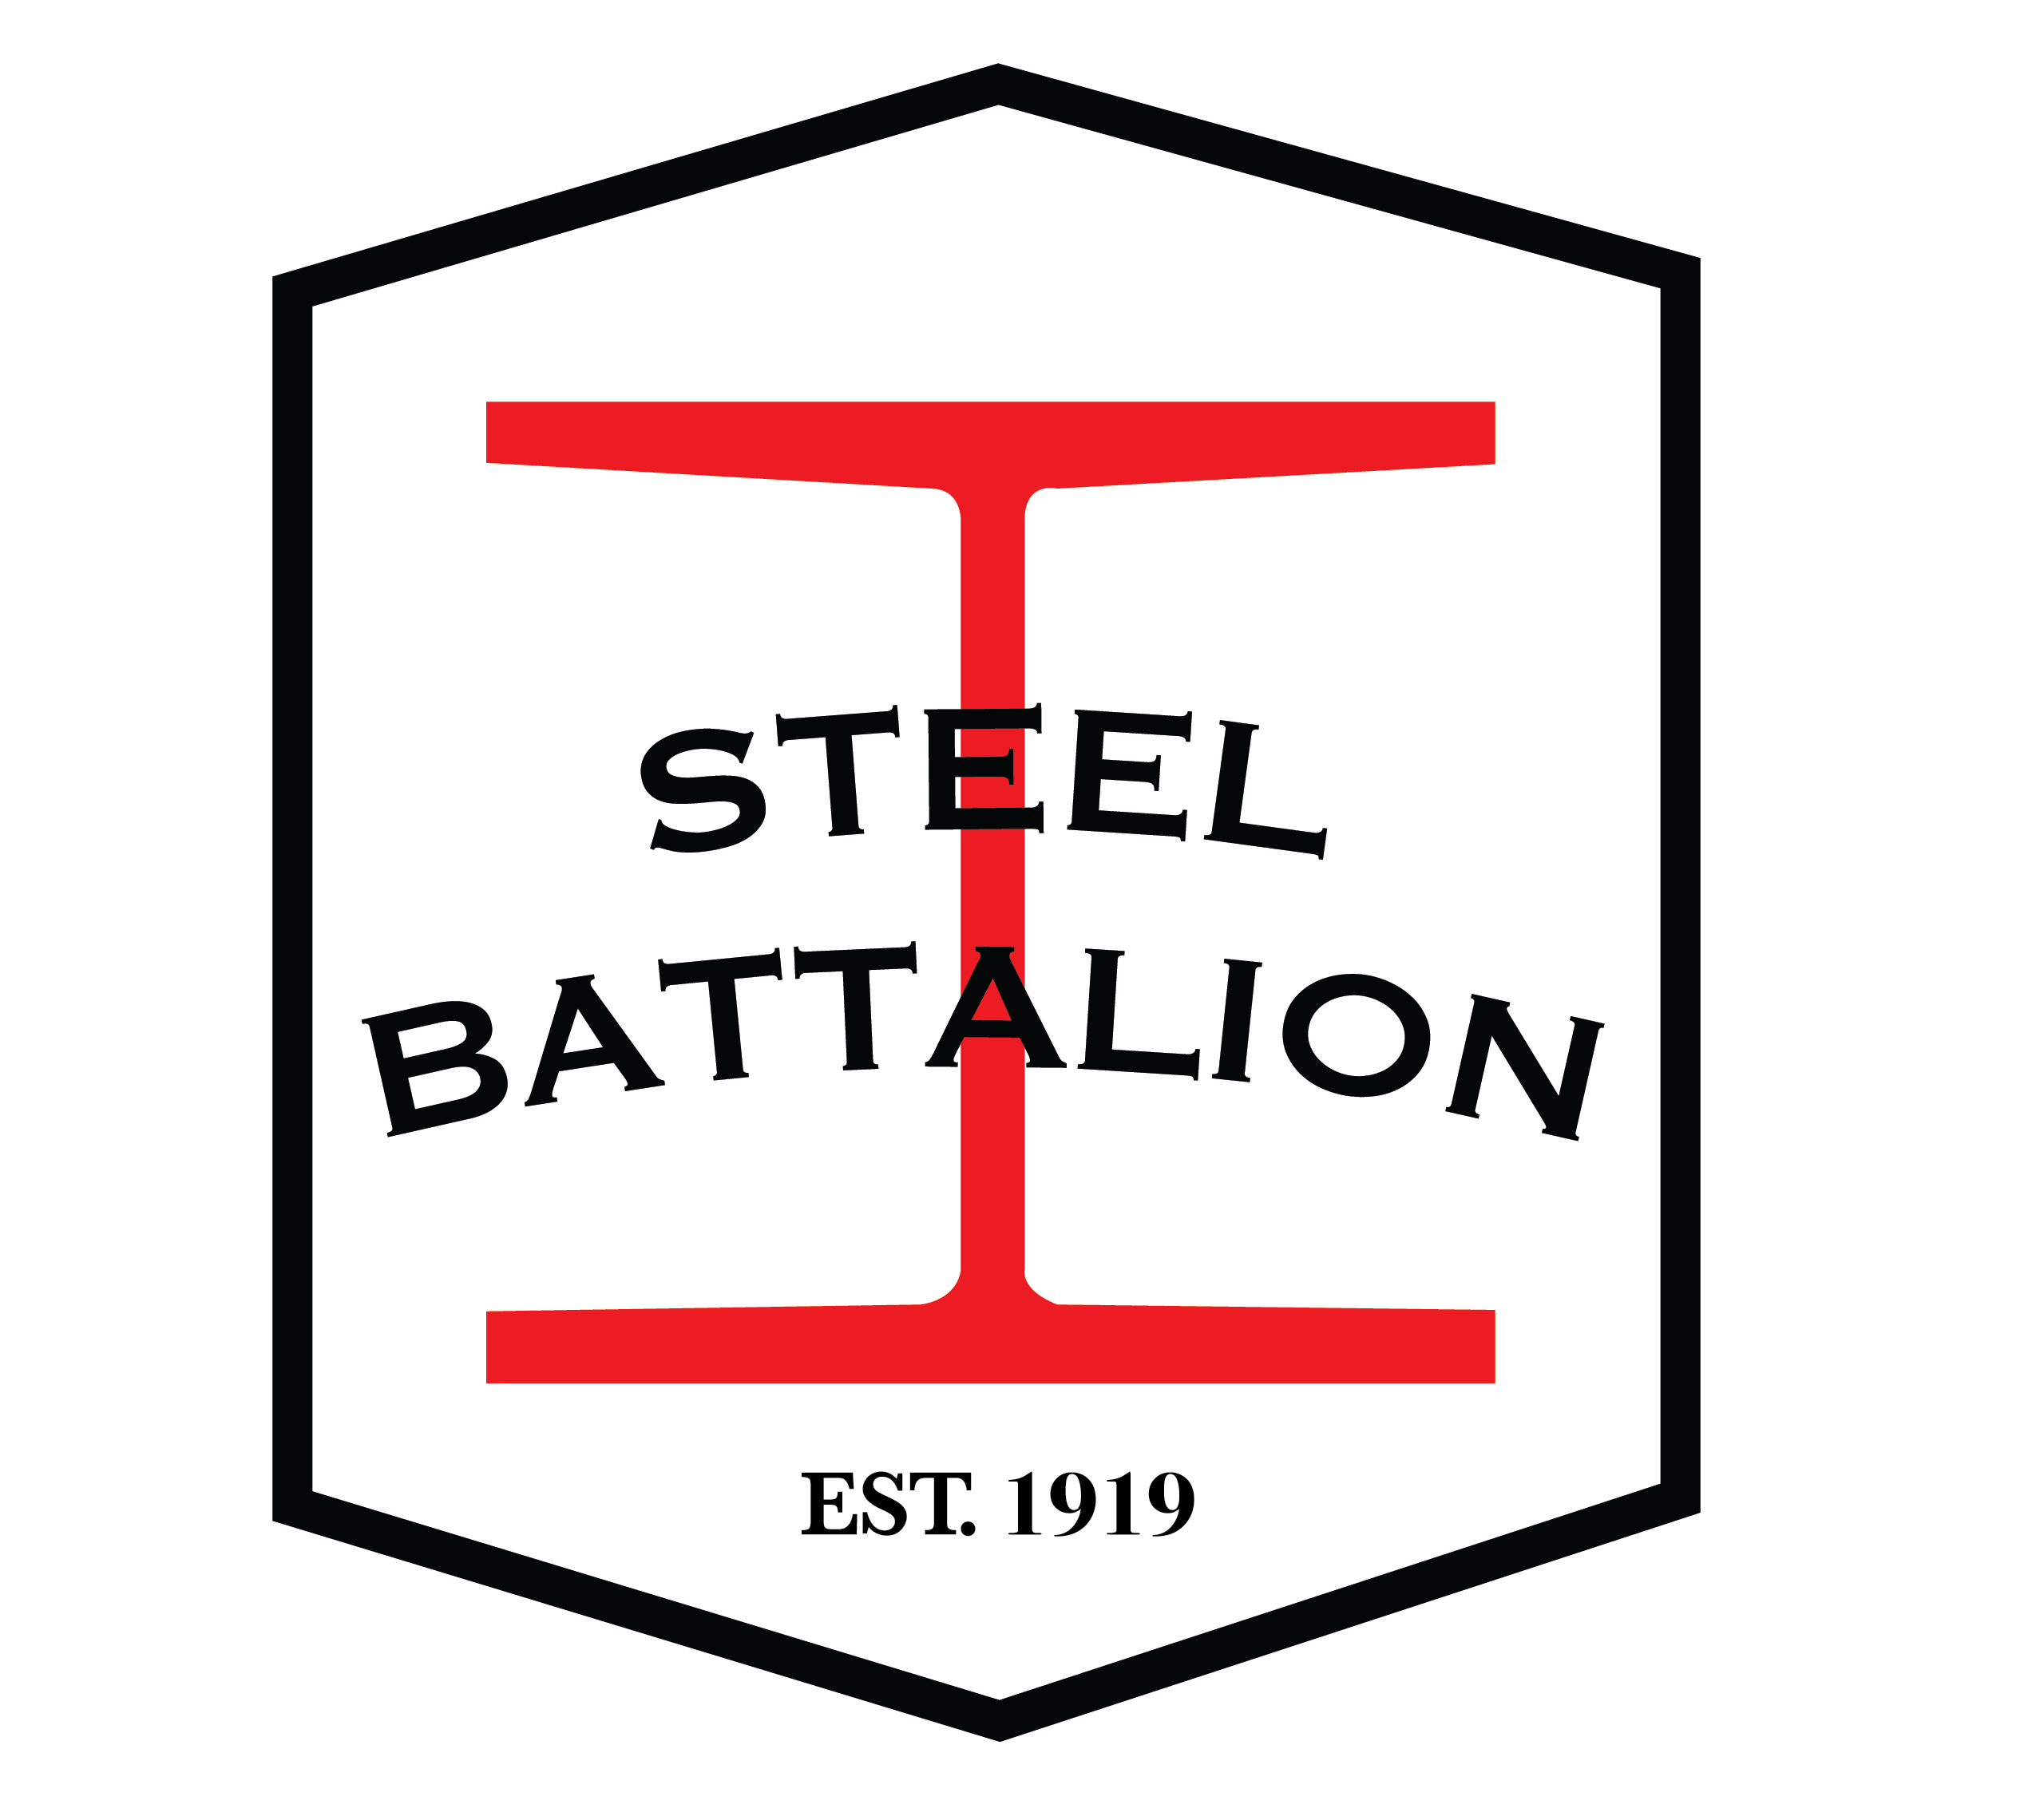 Steel Battalion logo